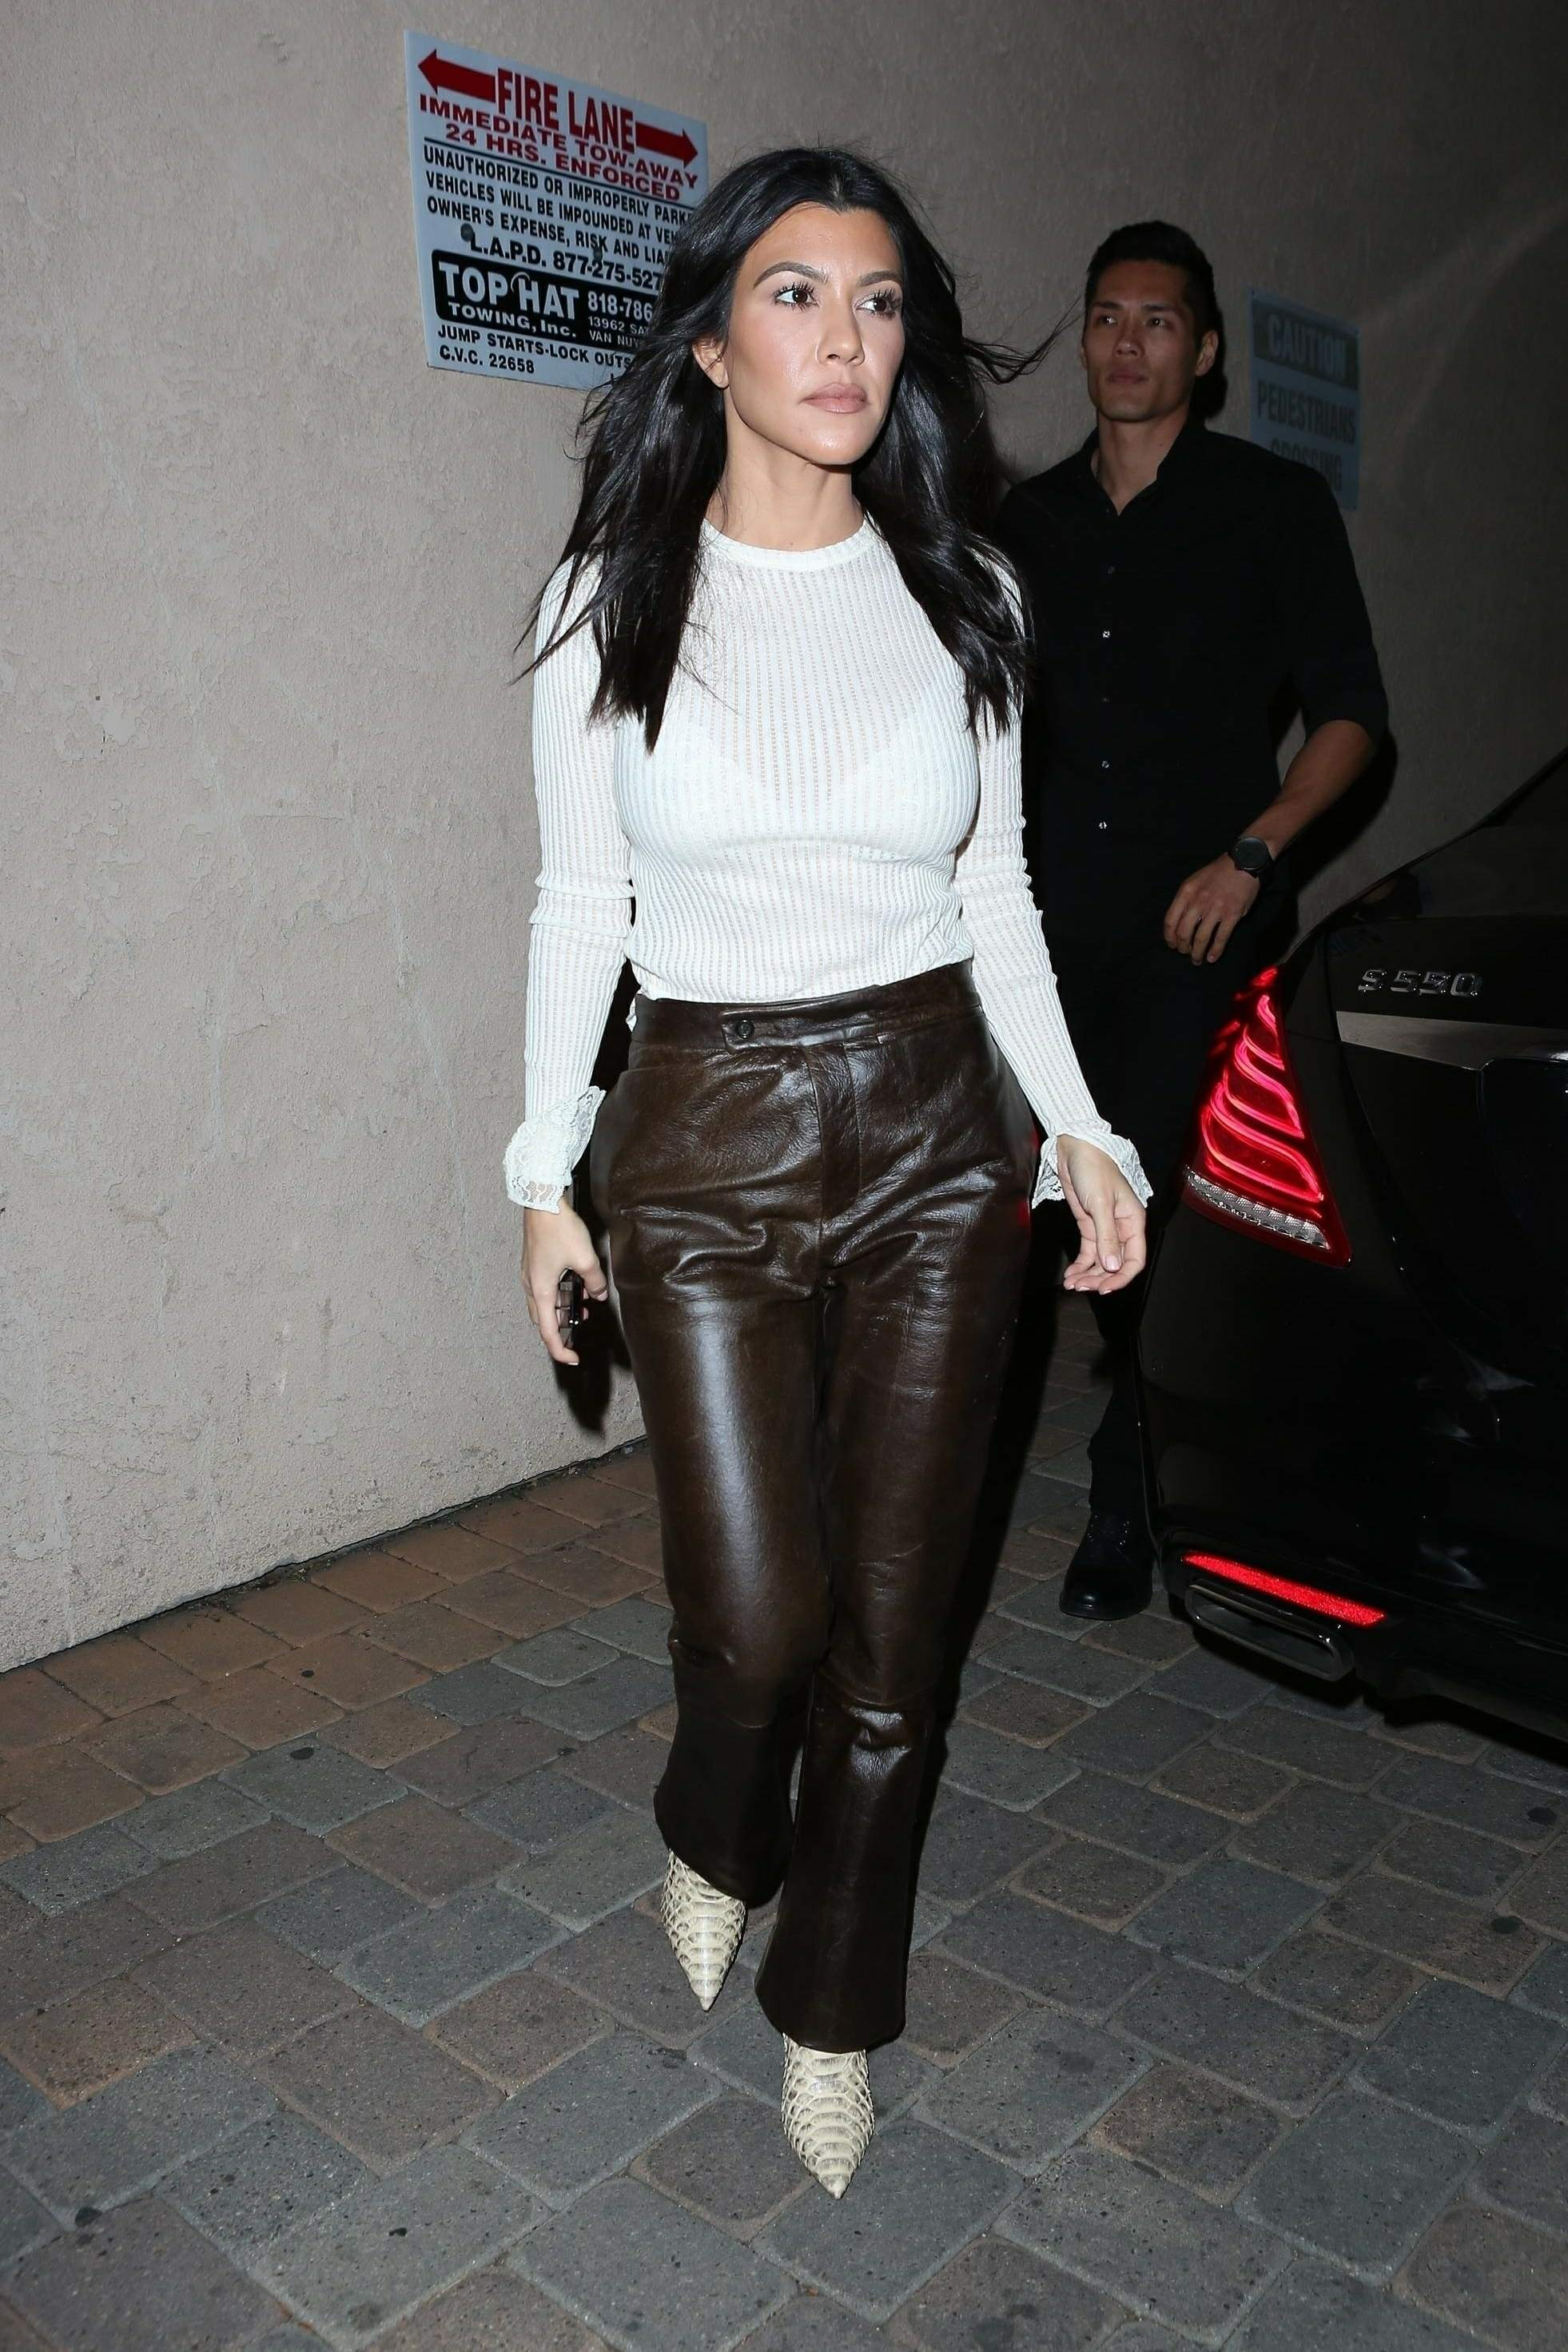 Kourtney Kardashian & Kendall Jenner out together for dinner